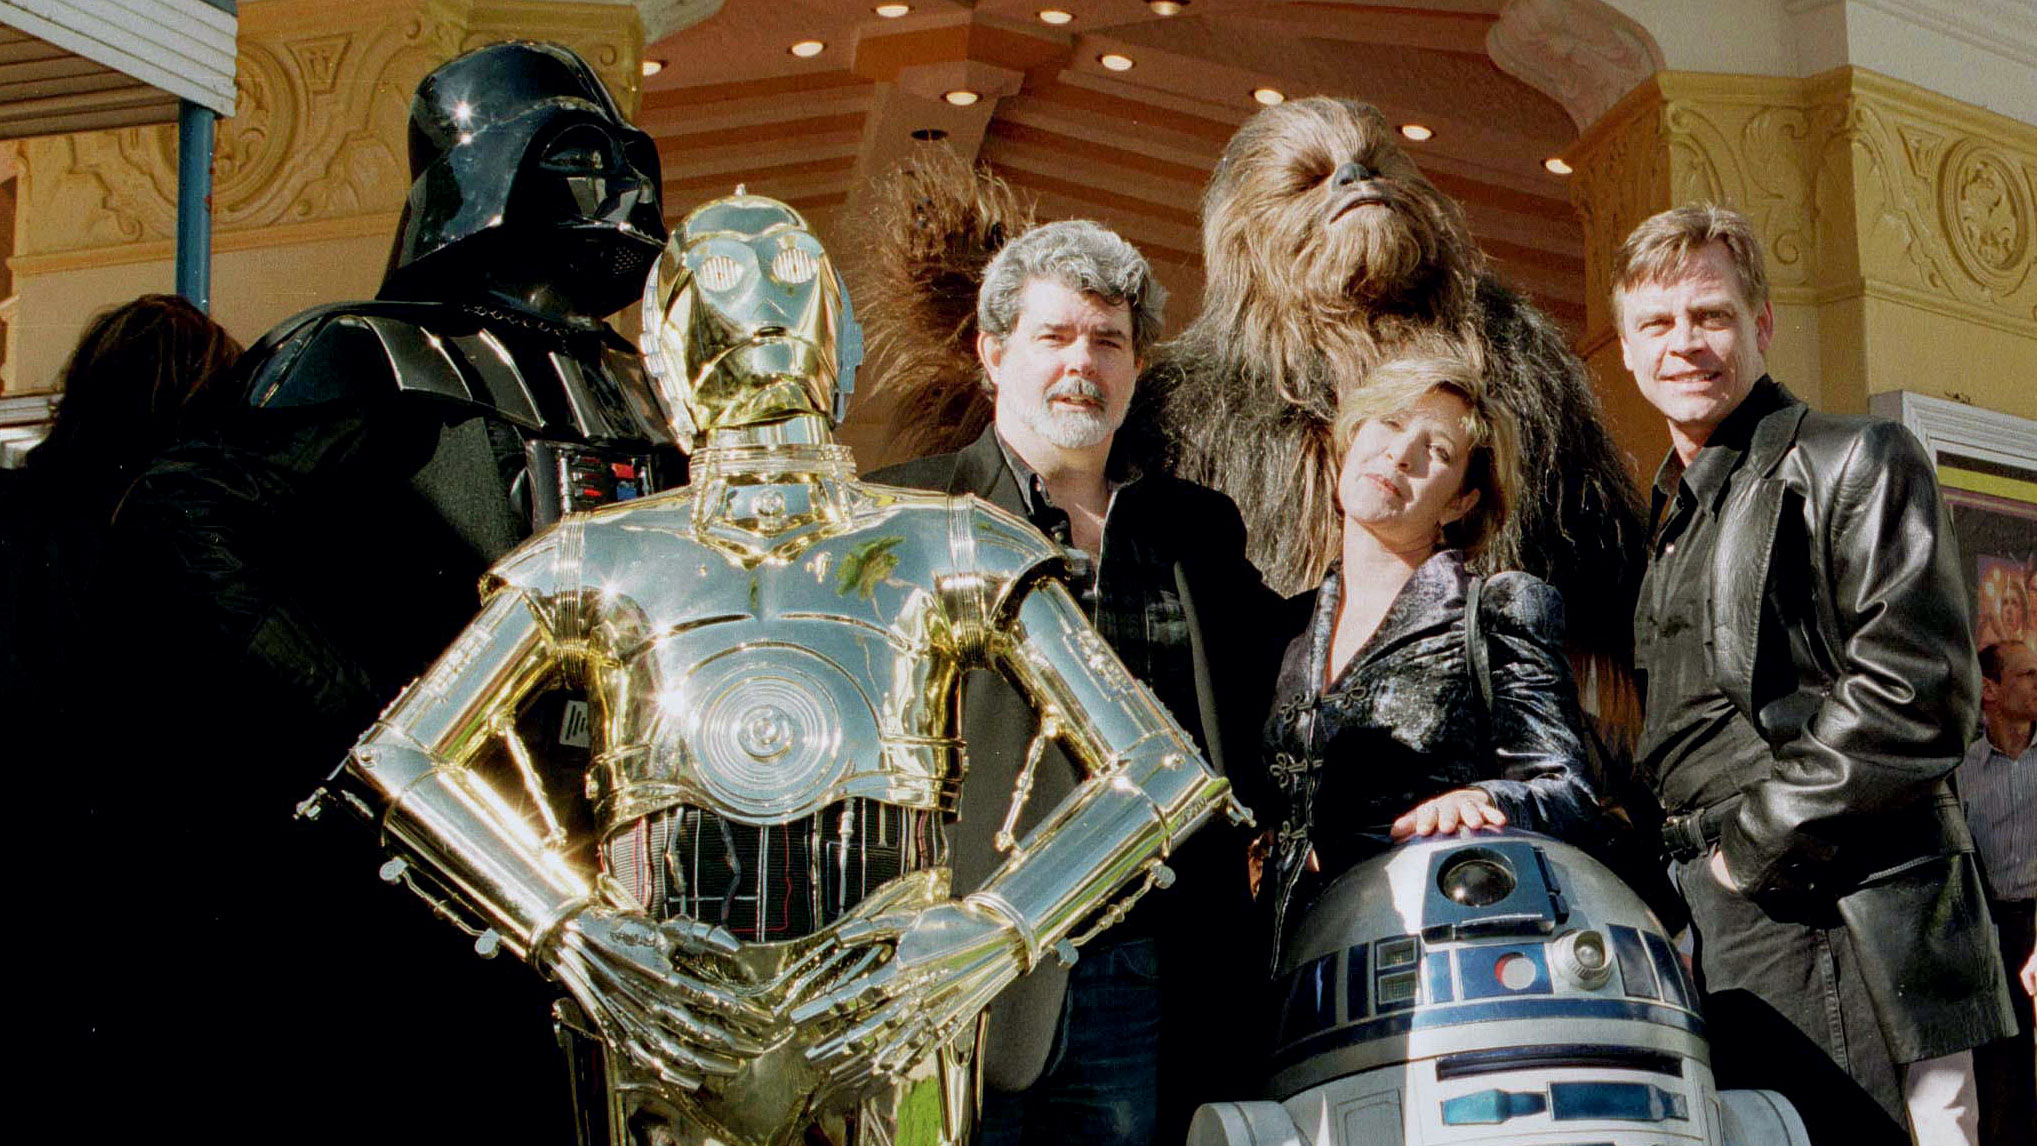 """Director and writer of """"Star Wars"""" George Lucas (C) poses with cast members Carrie Fisher and Mark Hamill along with characters """"Darth Vader"""" (L) """"3CPO"""" (in gold) """"R2D2"""" (short robot) and """"Chewbacca"""" (background) during the premiere of """"Star Wars Special Editon"""" in Los Angeles January 18. The film is celebrating its 20th anniversary. - RTXHQDM"""